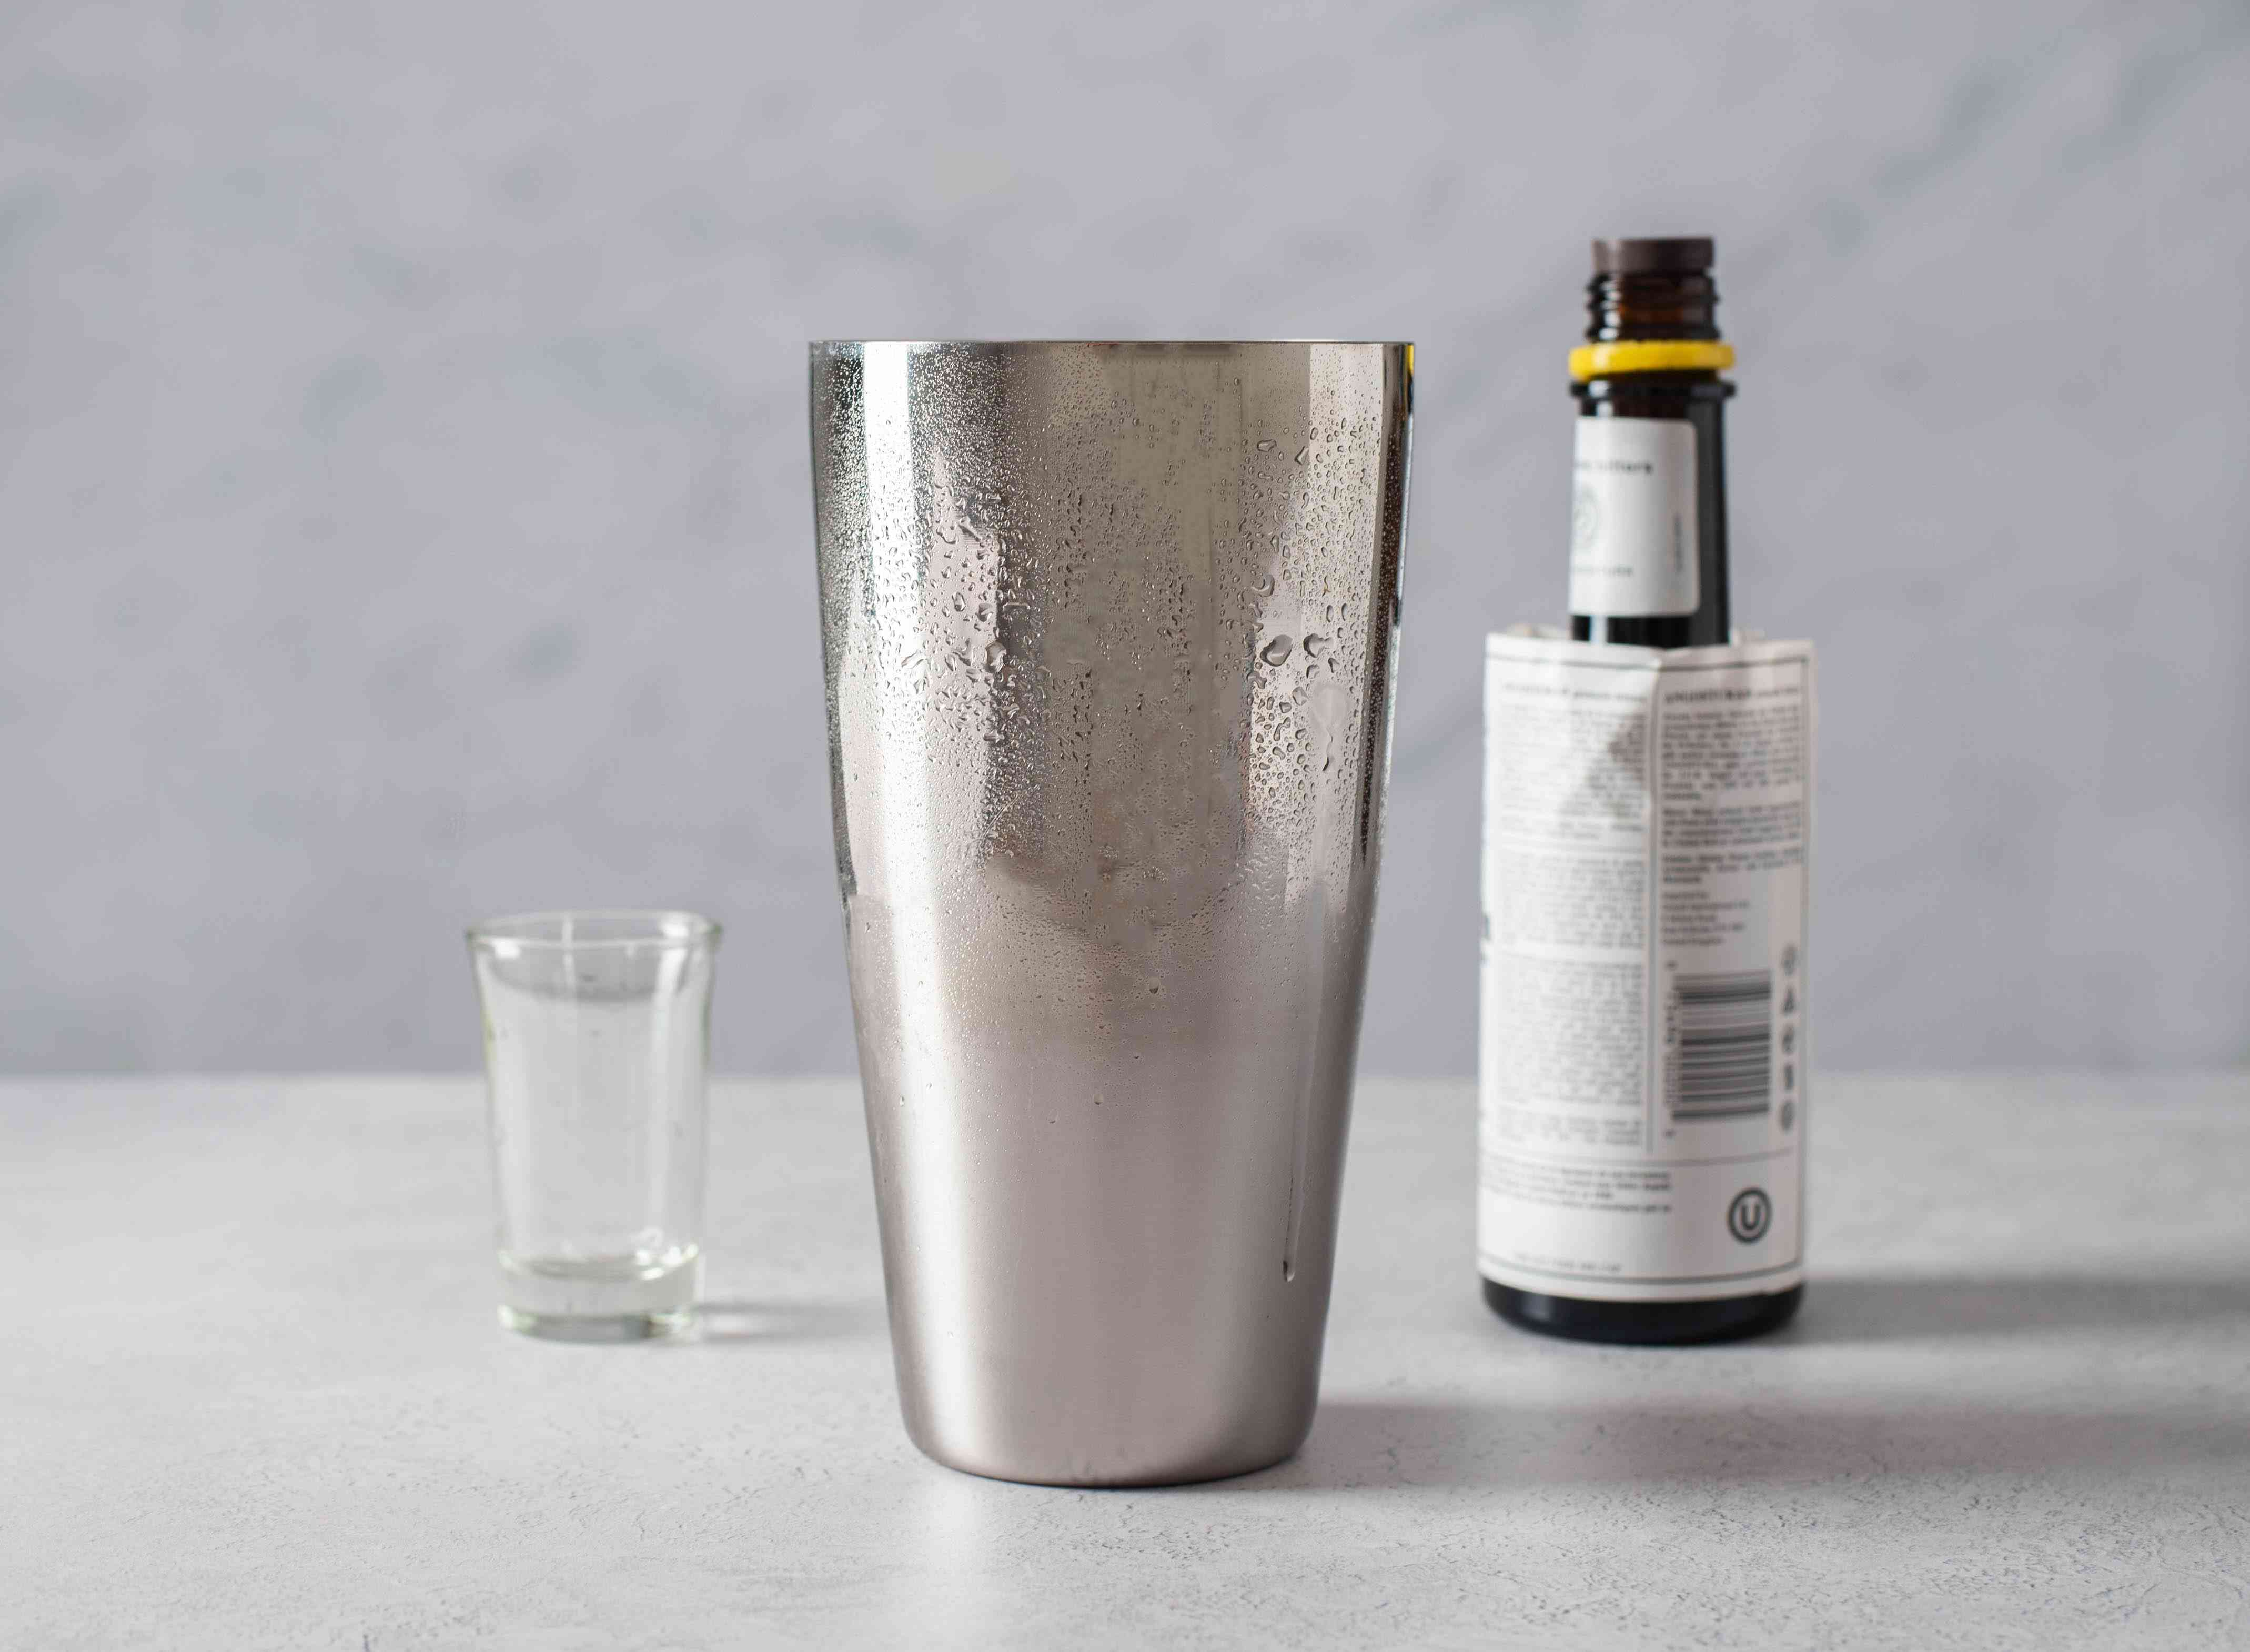 In a cocktail shaker filled with ice cubes, combine the gin and bitters